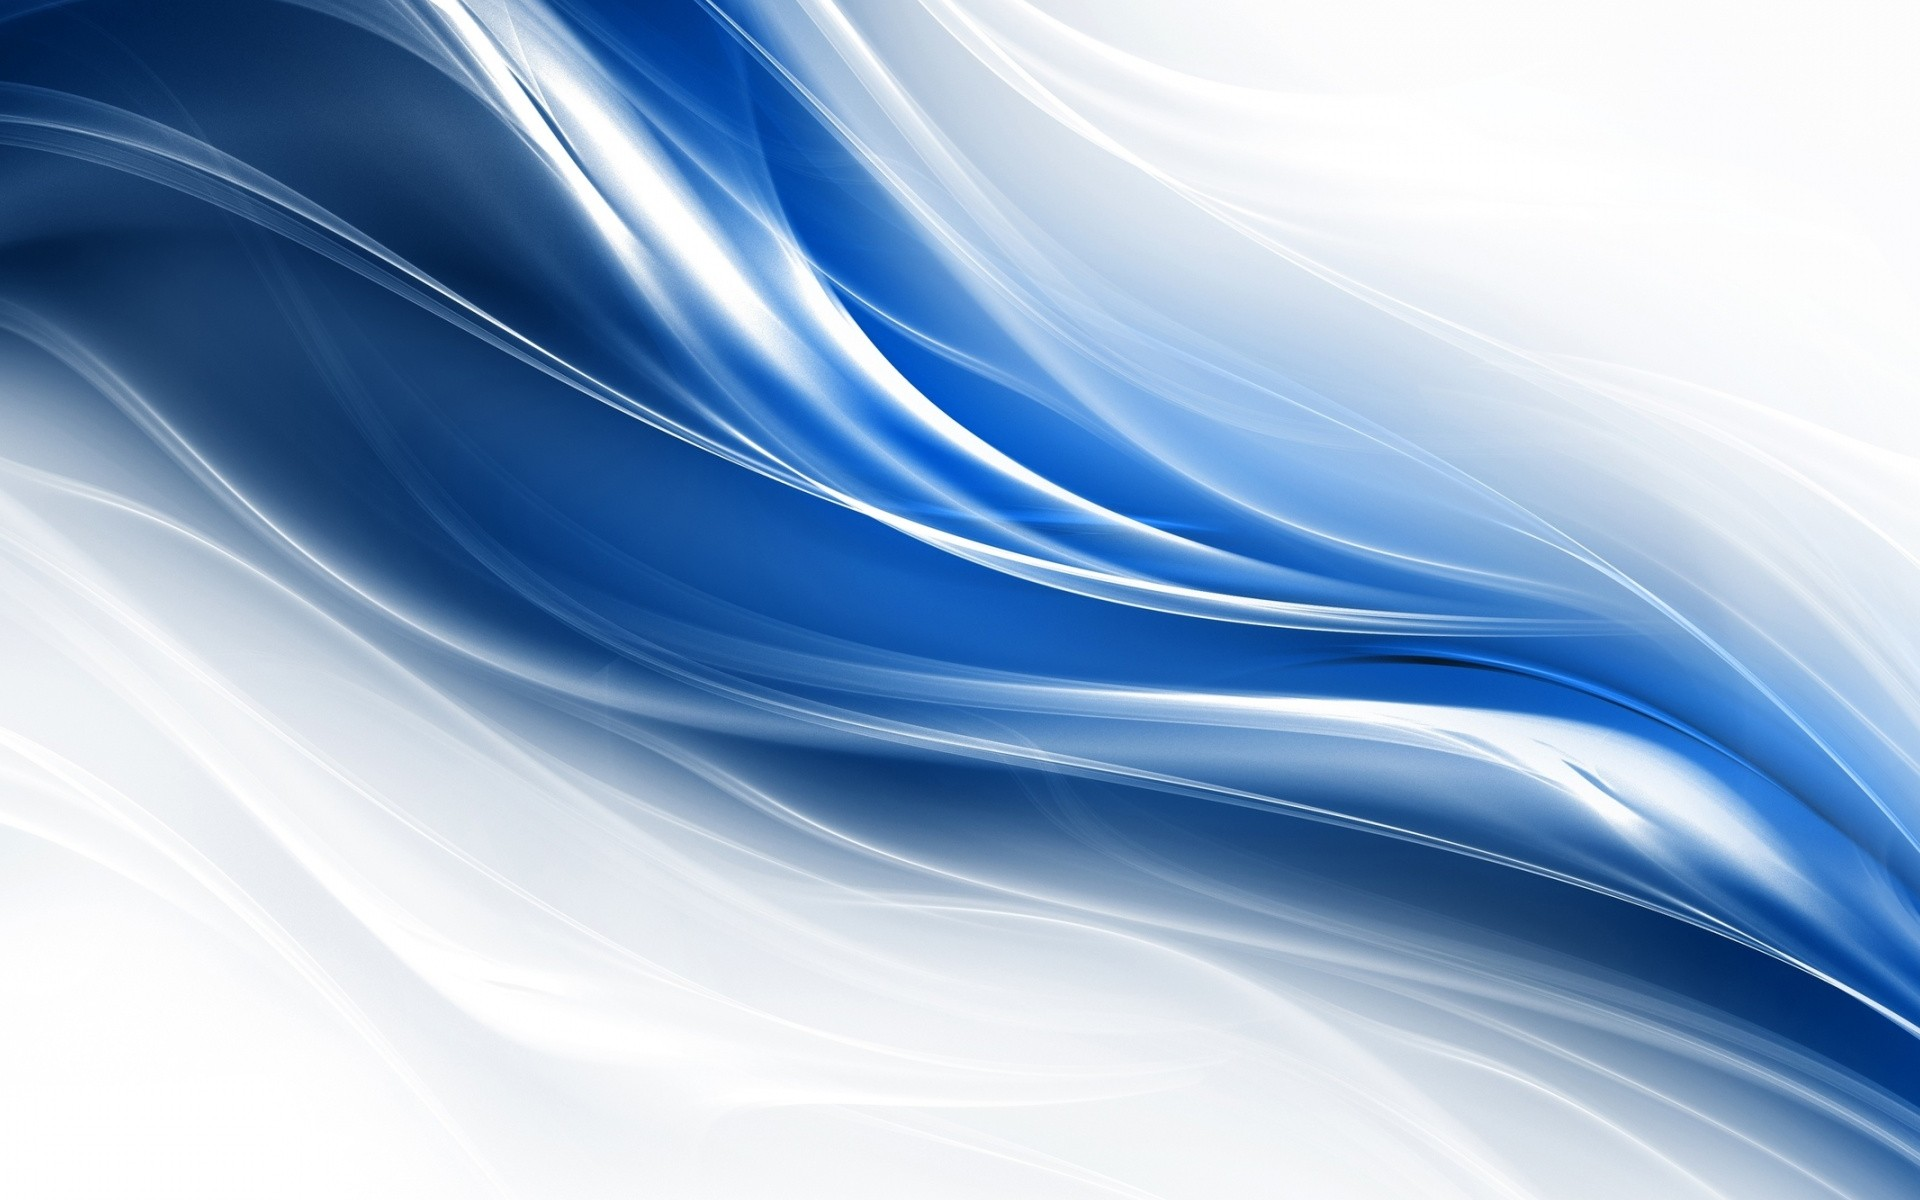 Flow Backgrounds on Wallpapers Vista